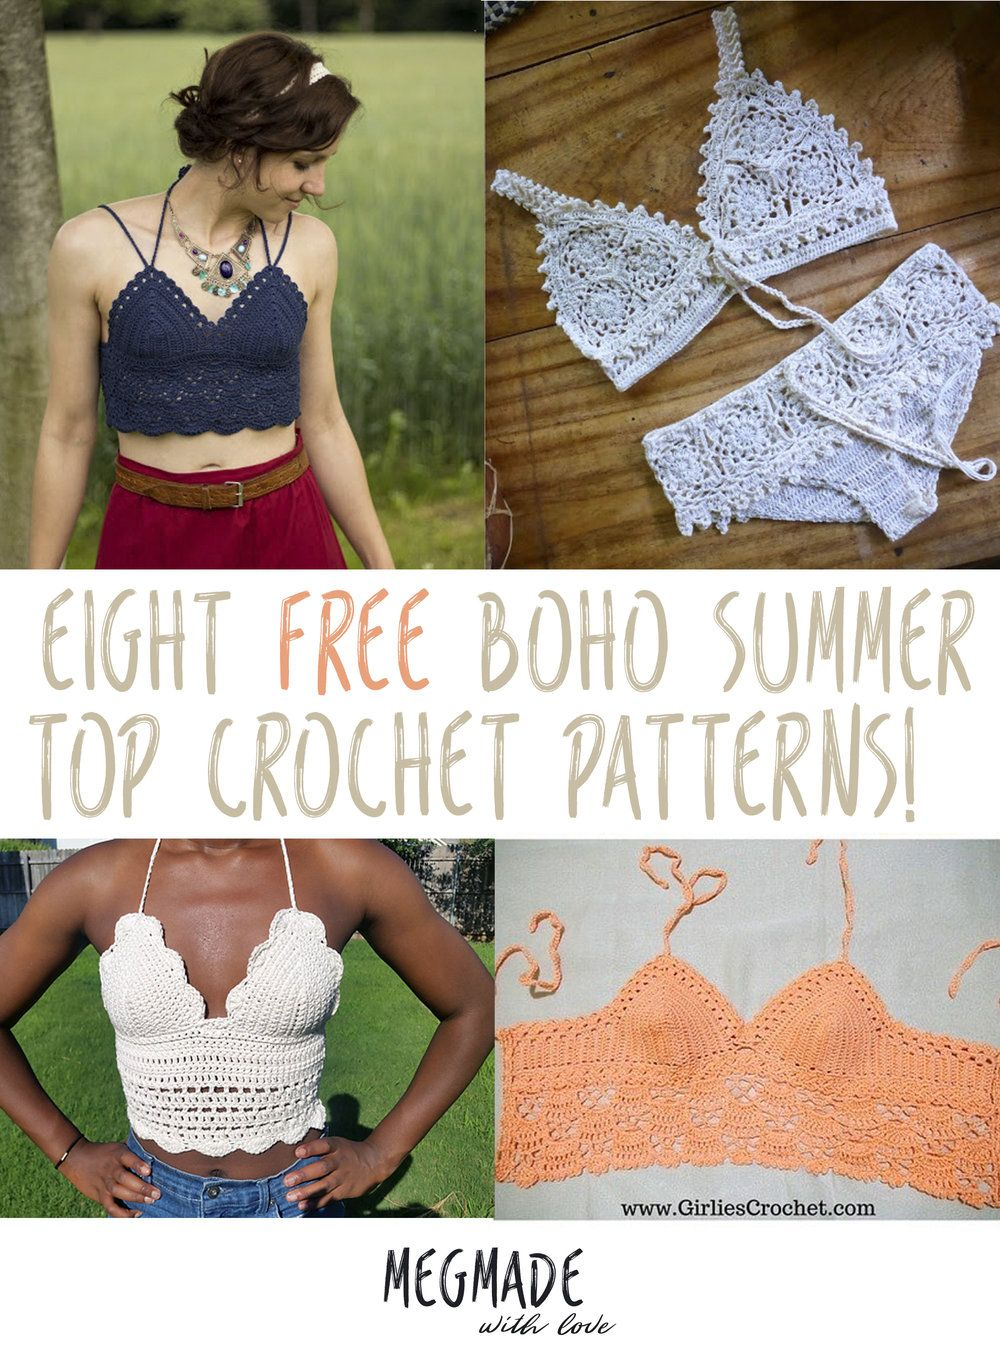 8 Free Boho Summer Top Crochet Patterns | Pinterest | Handarbeiten ...